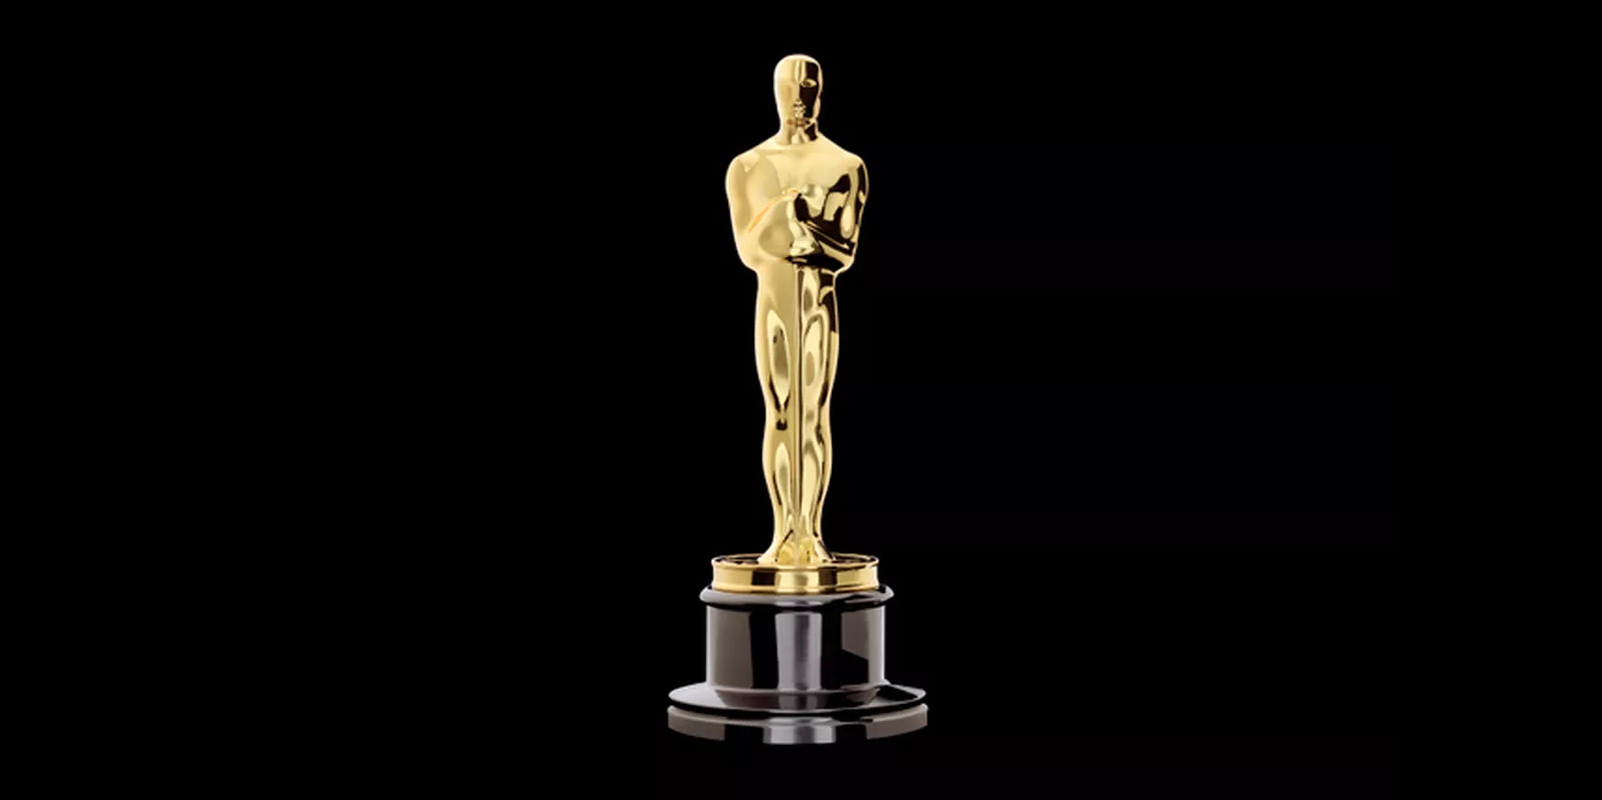 Academy announces the Oscars will have no host again this year